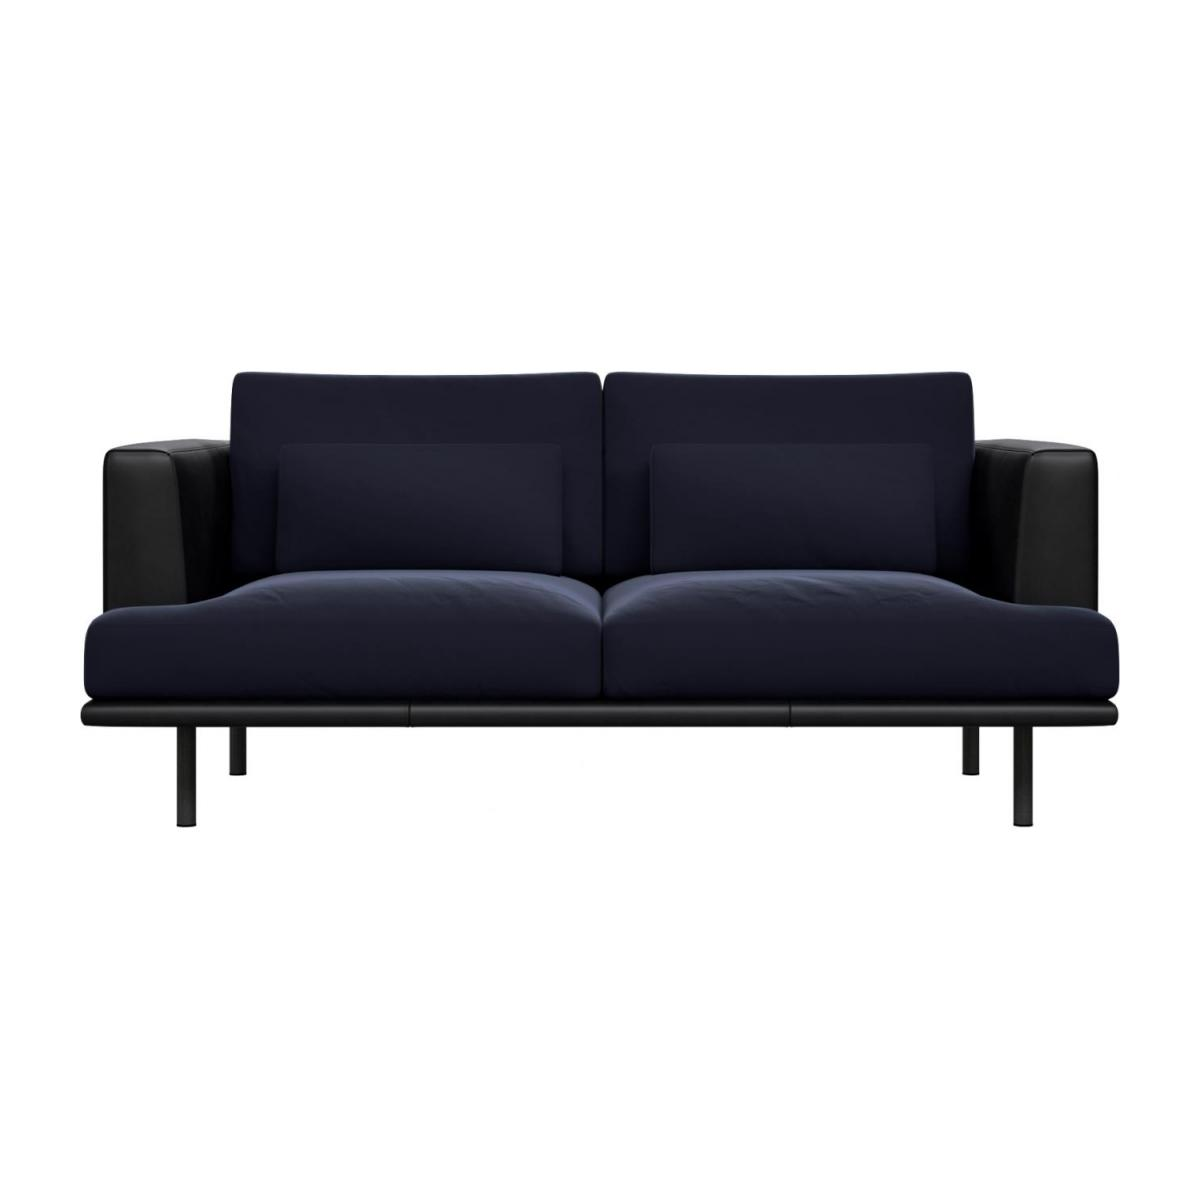 2 seater sofa in Super Velvet fabric, dark blue with base and armrests in black leather n°2